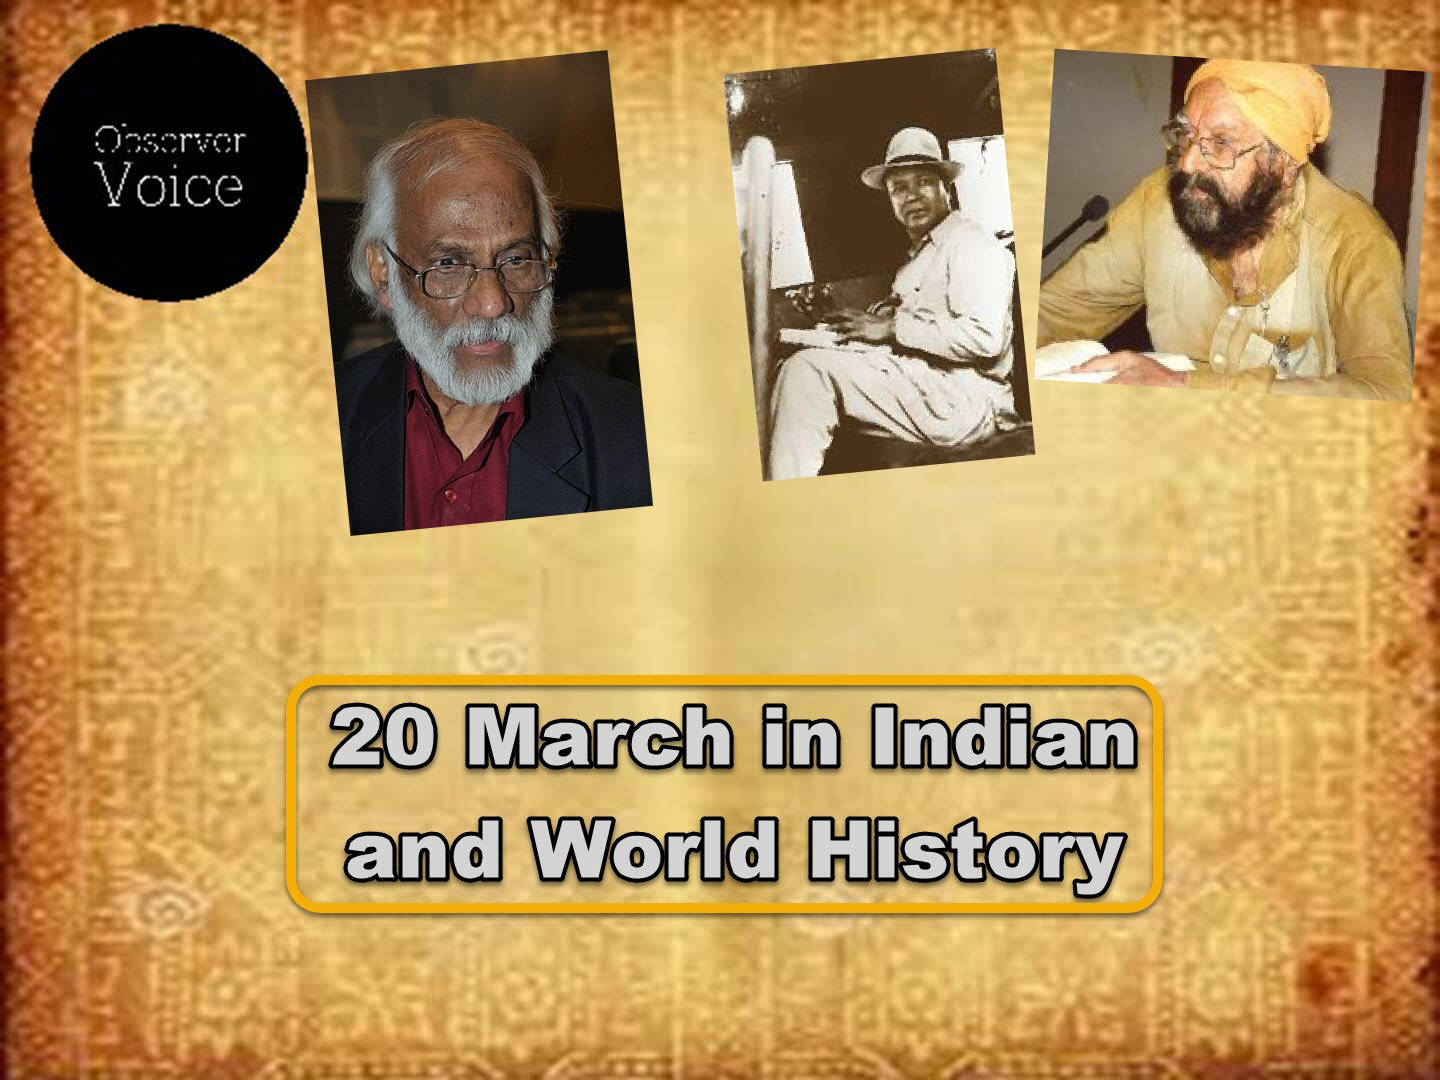 20 March in Indian and World History